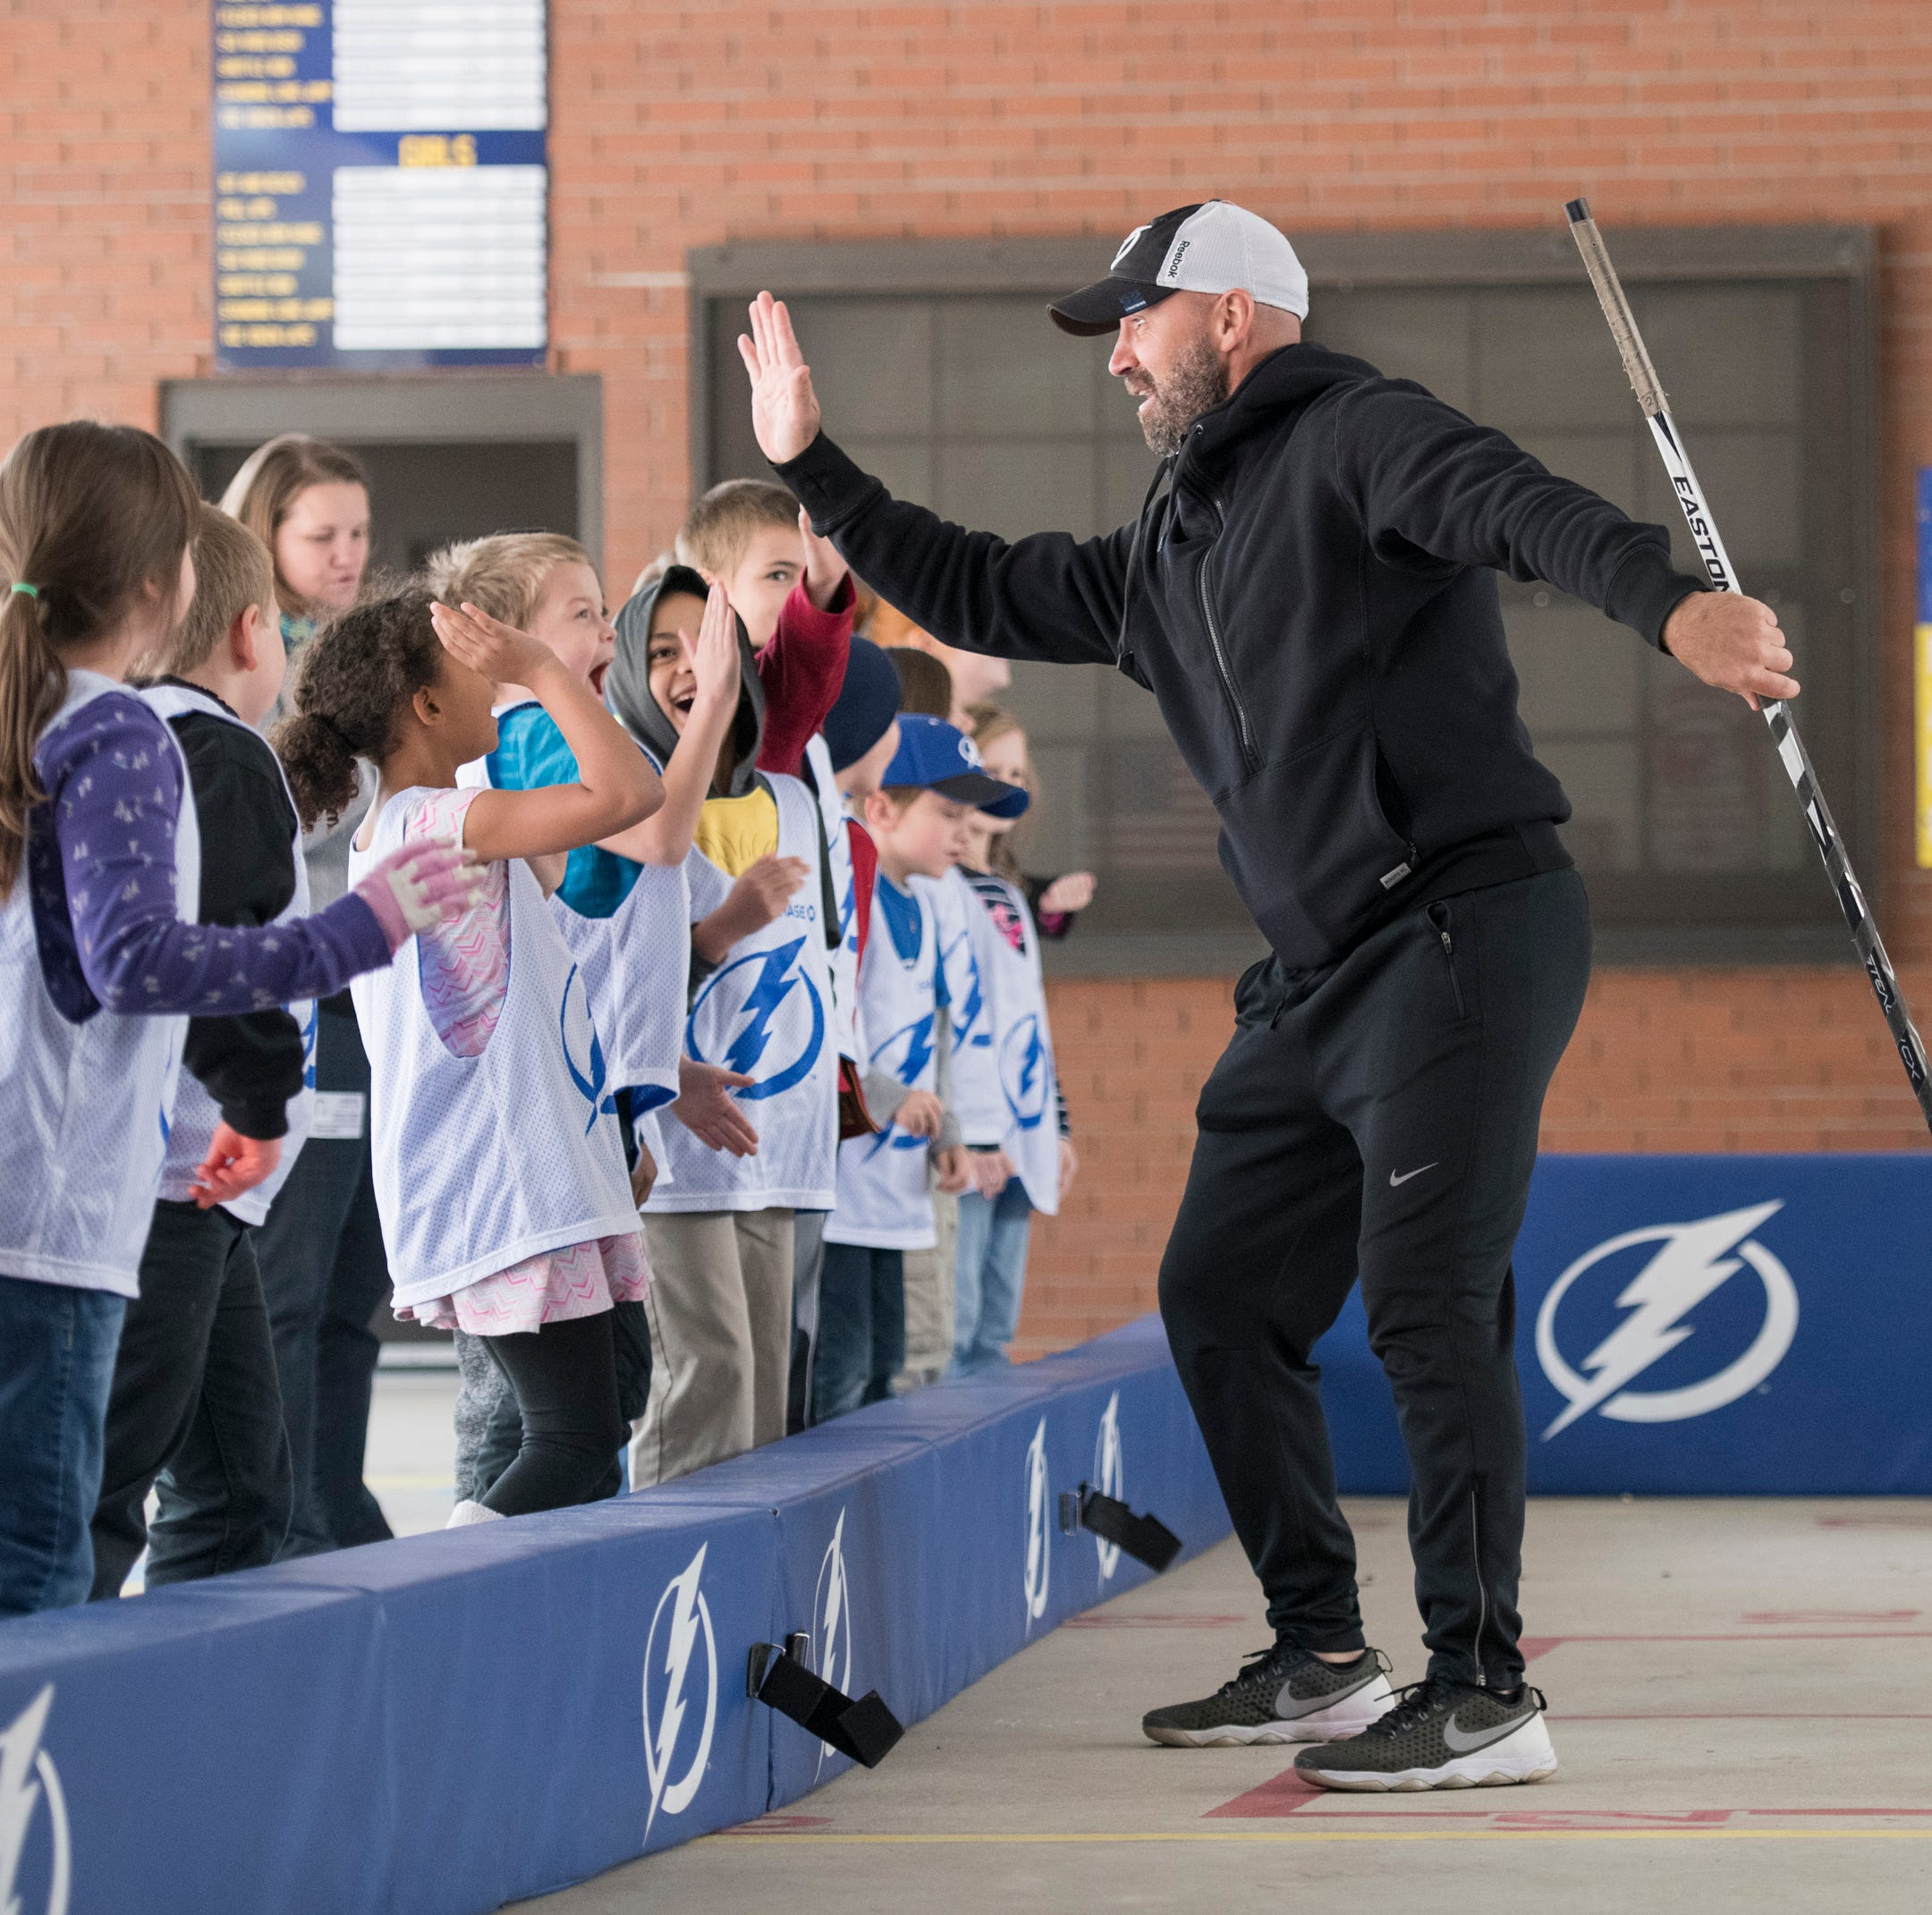 Former Ice Pilots' star Metropolit, Ice Flyers players help grow game with kids